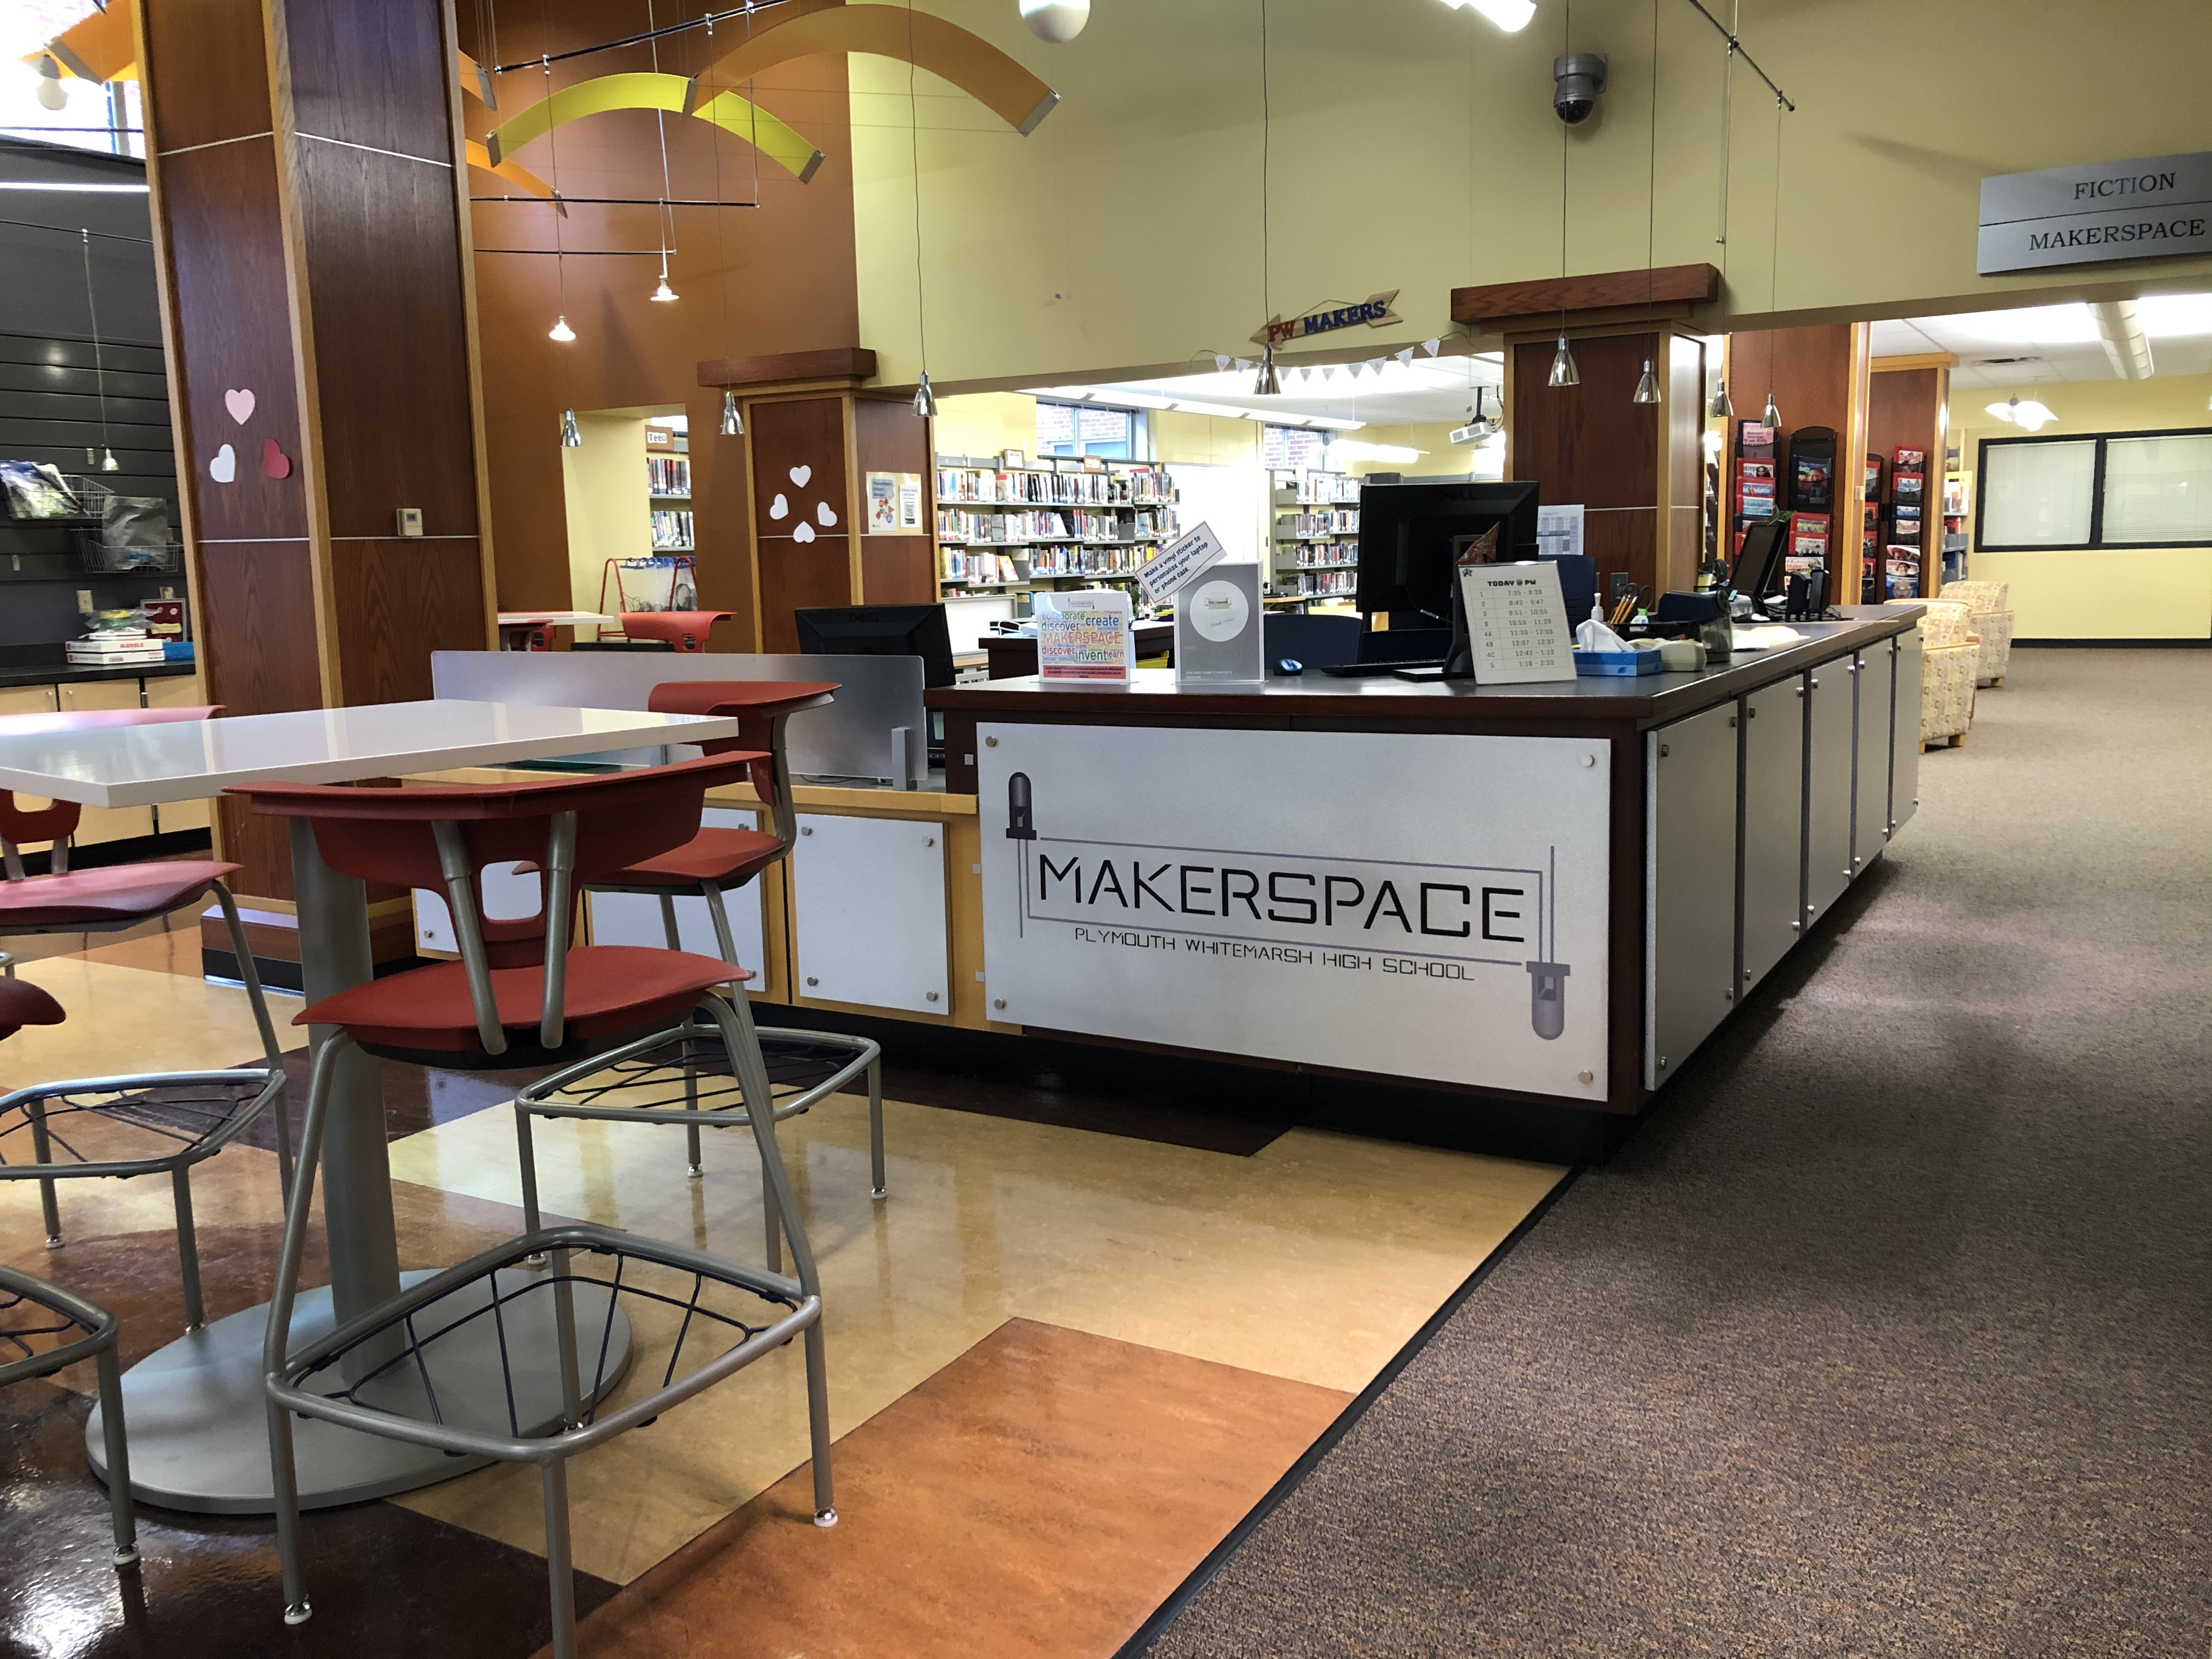 front desk of library and part of the seating area with makerspace logo